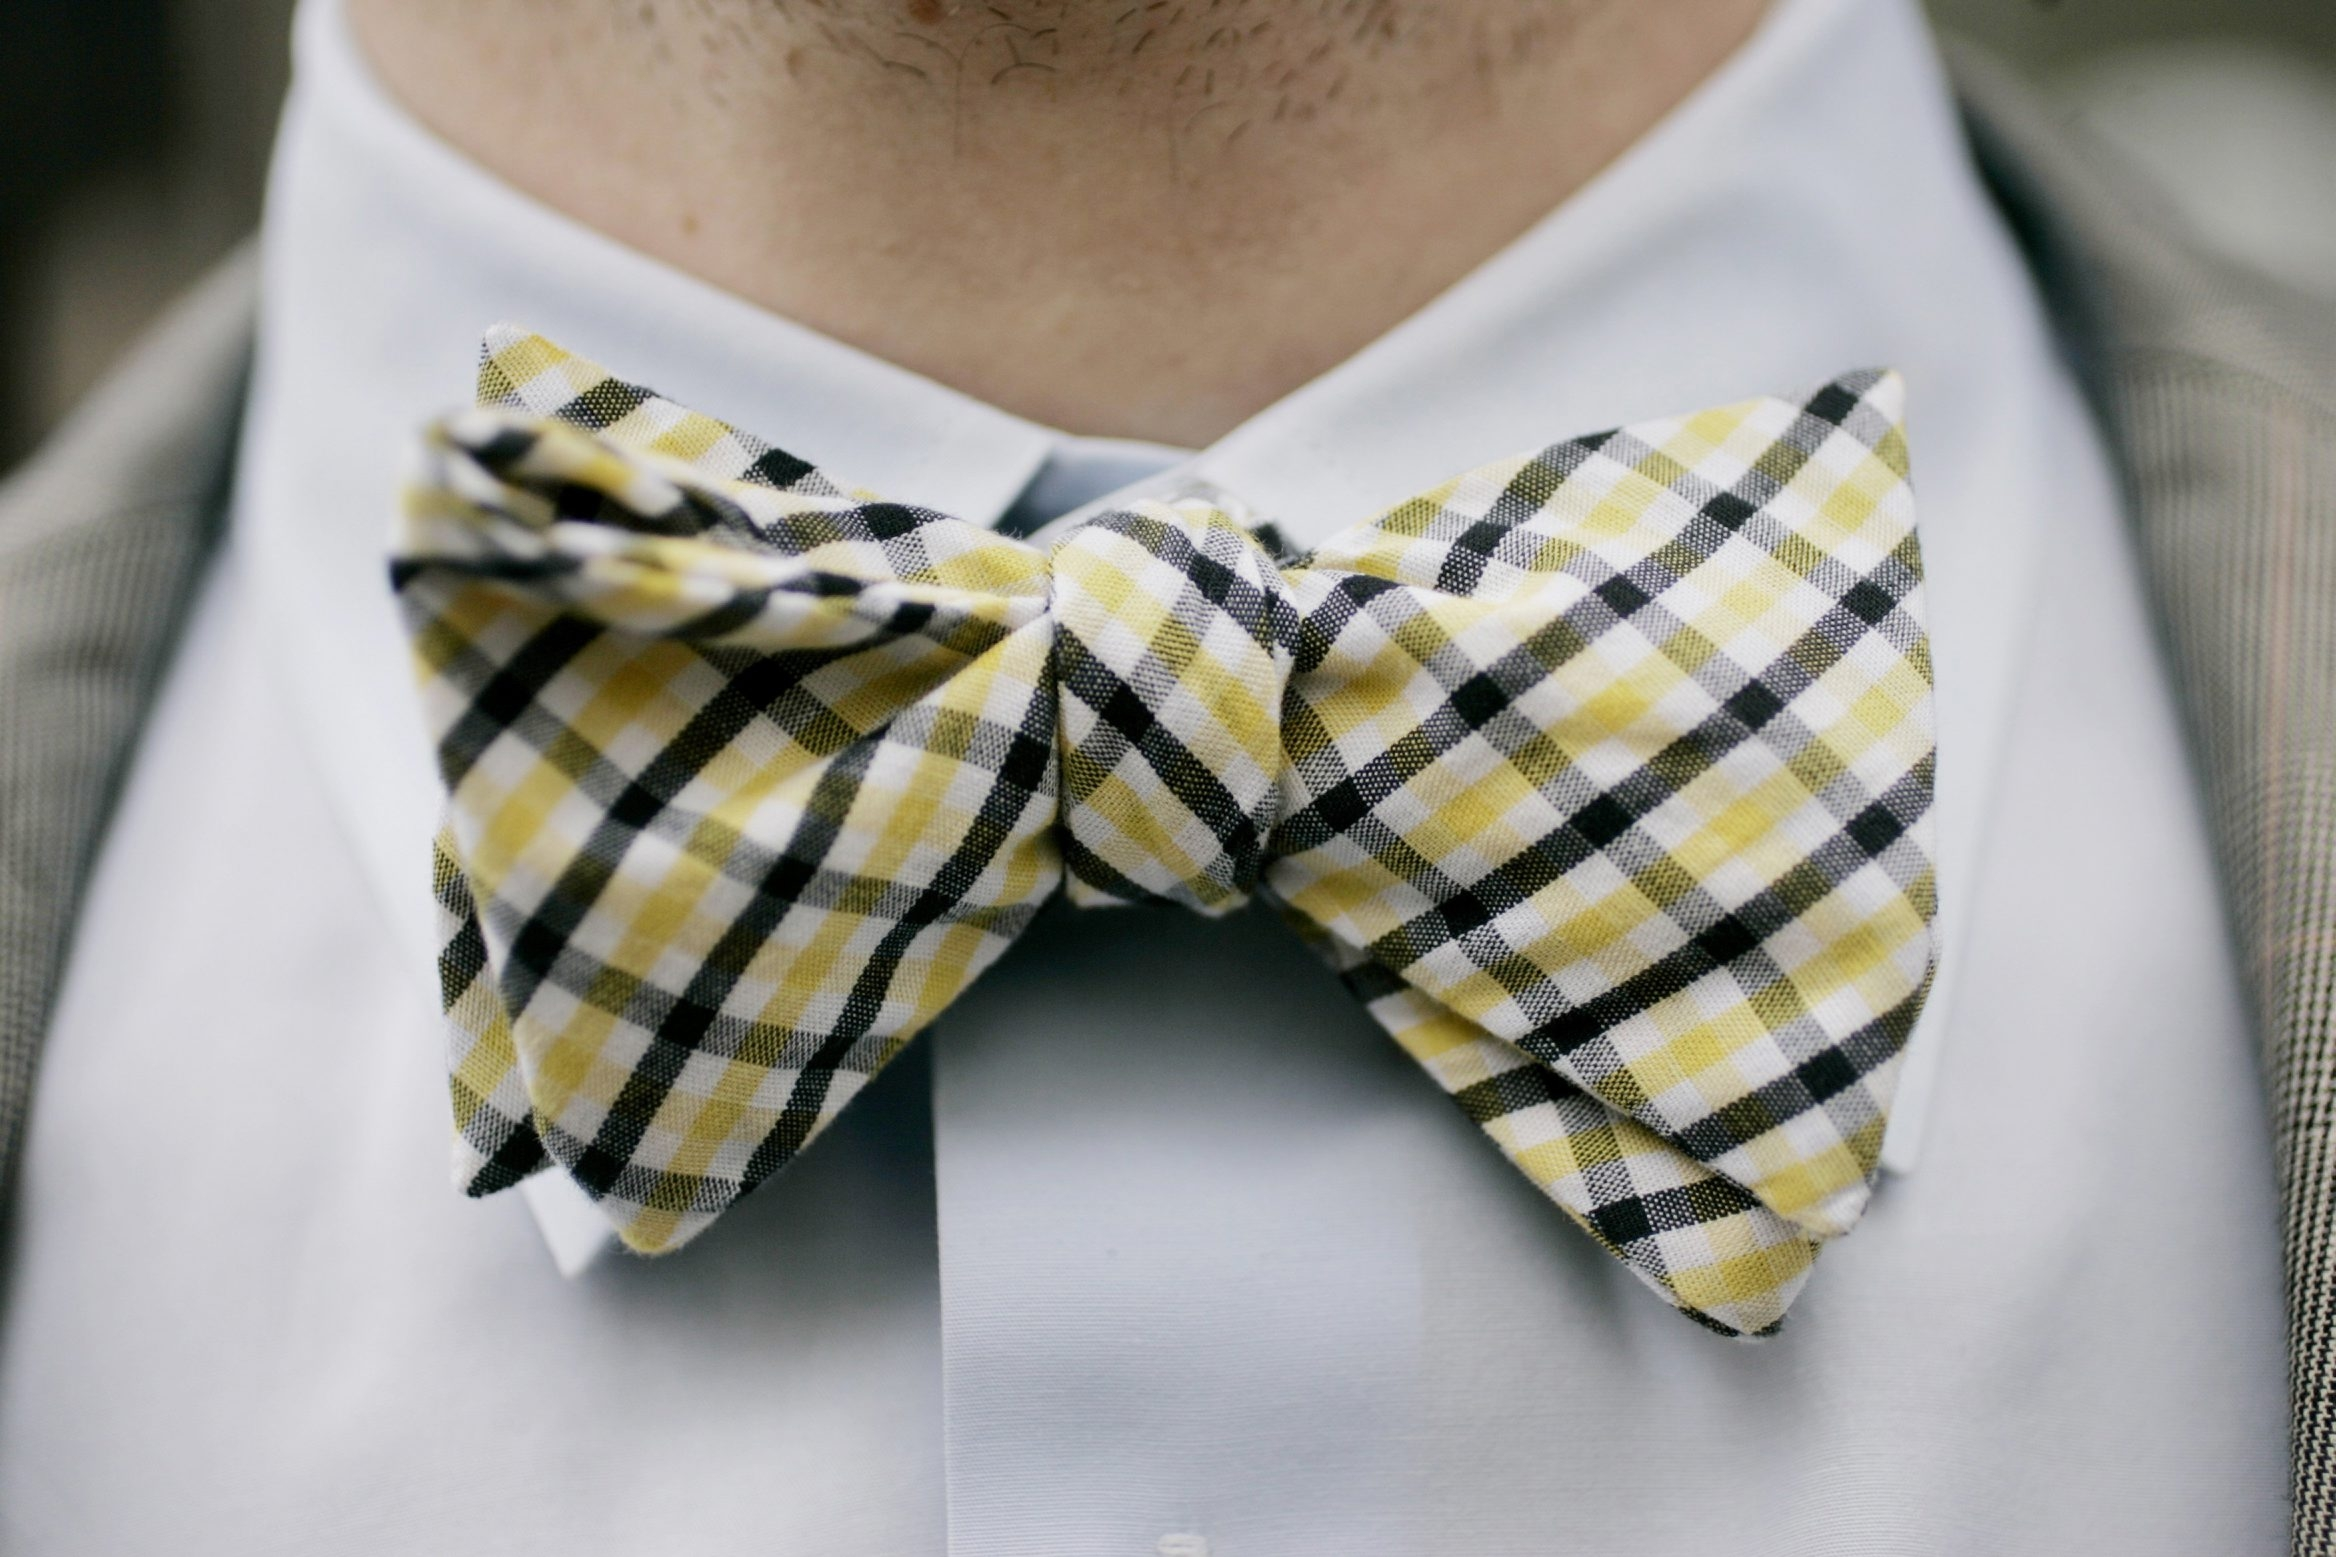 Fun bow ties allow for a pop of color. Choose from classic stripes, dots and plaids, among other designs.